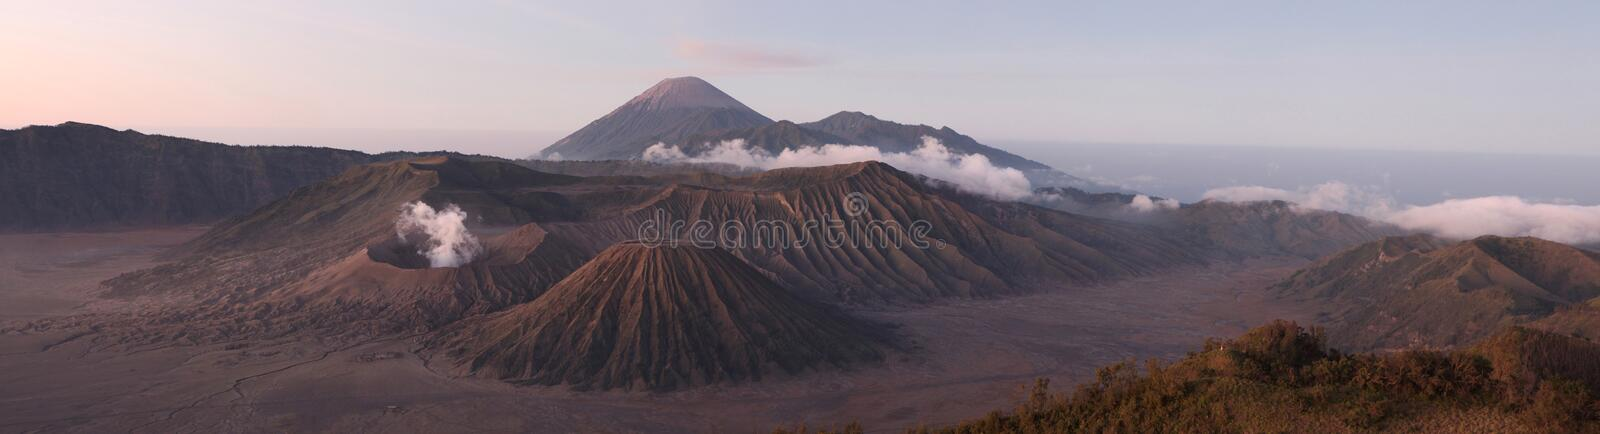 Sunrise over Mount Bromo and the Tengger Caldera in East Java, I. Sunrise over Mount Bromo (2,329 m) and the Tengger Caldera in East Java, Indonesia. Panorama royalty free stock images